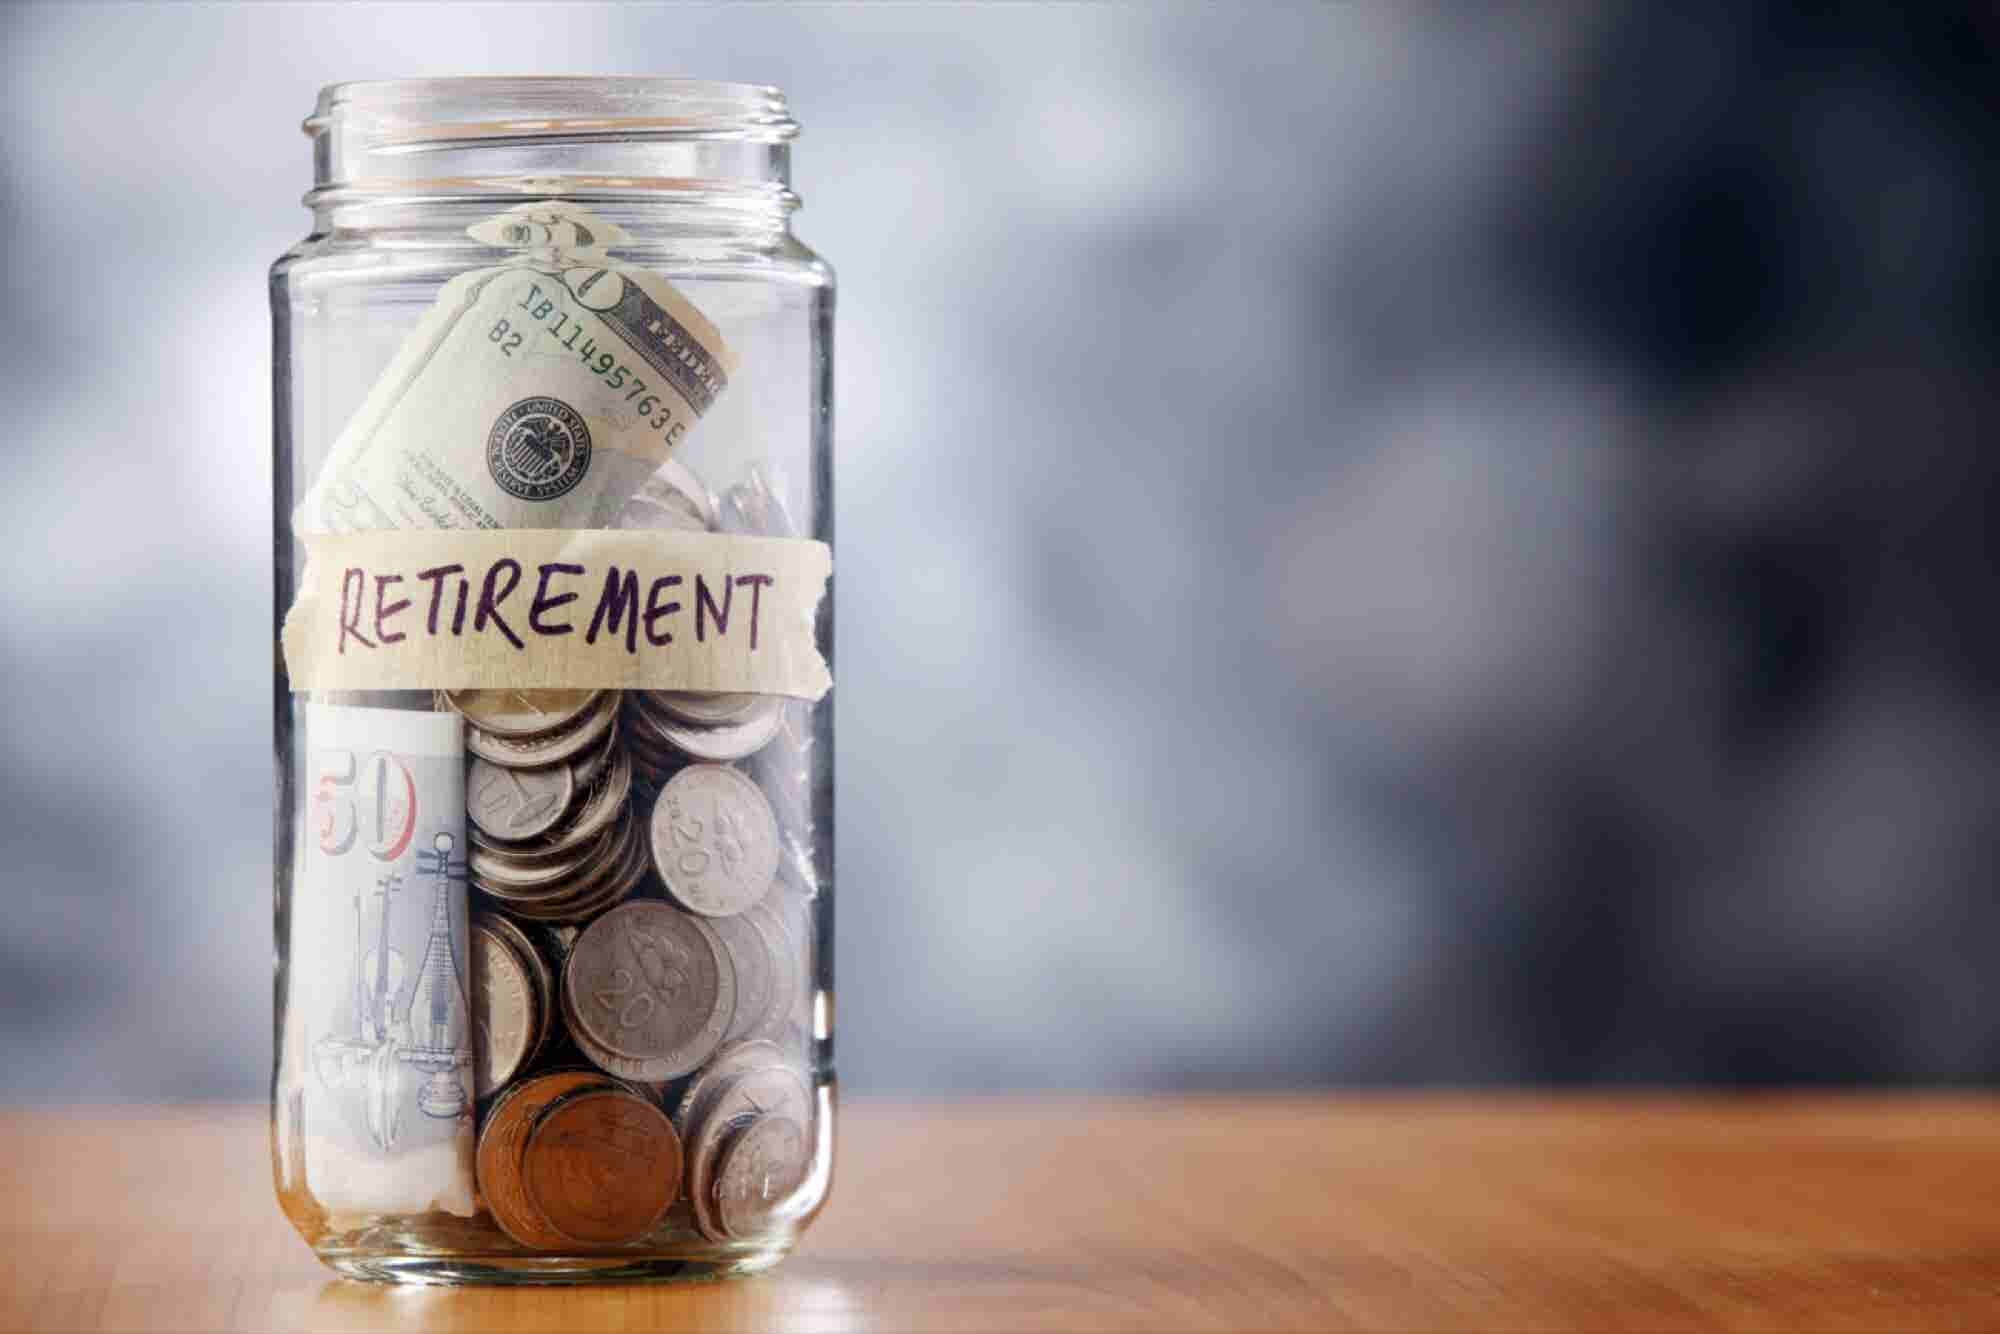 Why do Entrepreneurs Opt For An Early Retirement?